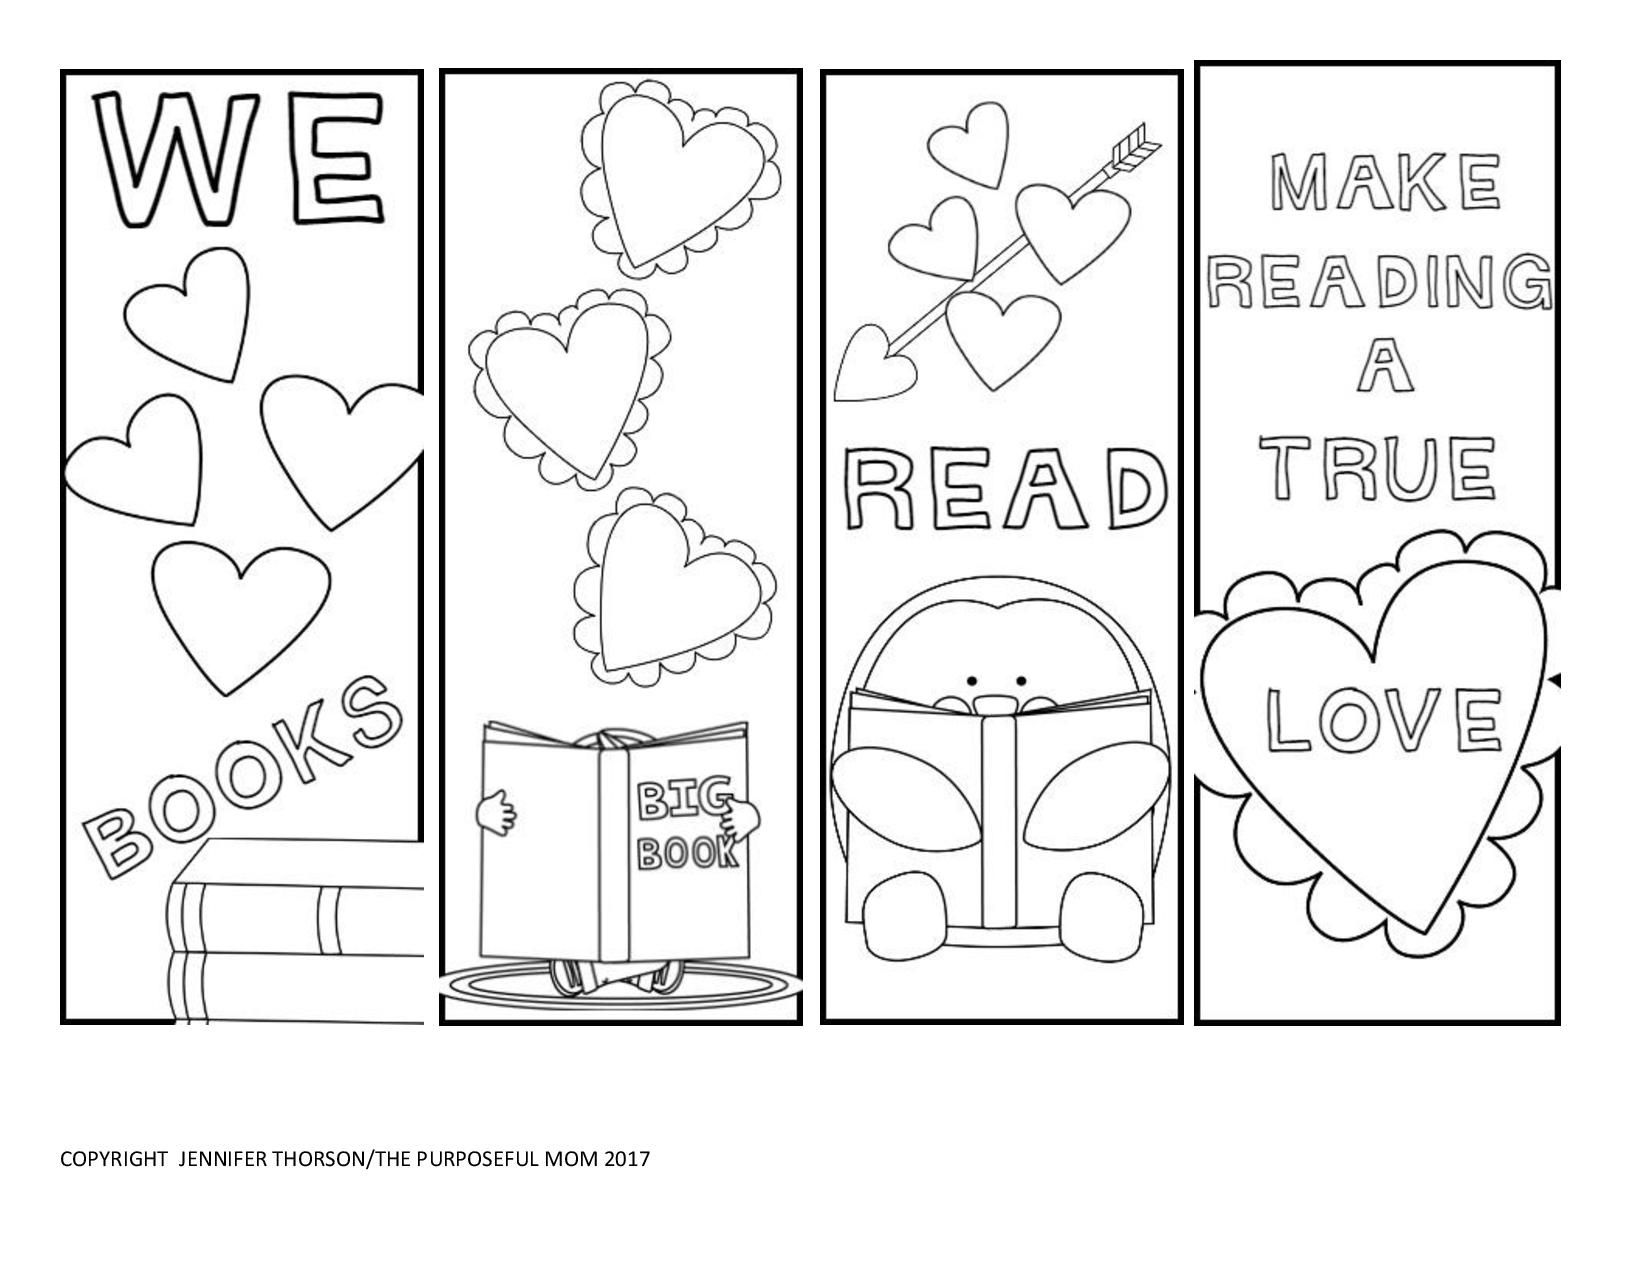 Print These Free Valentine S Day Bookmarks To Color Fun For Kids And Grownups Valentine Coloring Pages Coloring Bookmarks Free Coloring Bookmarks